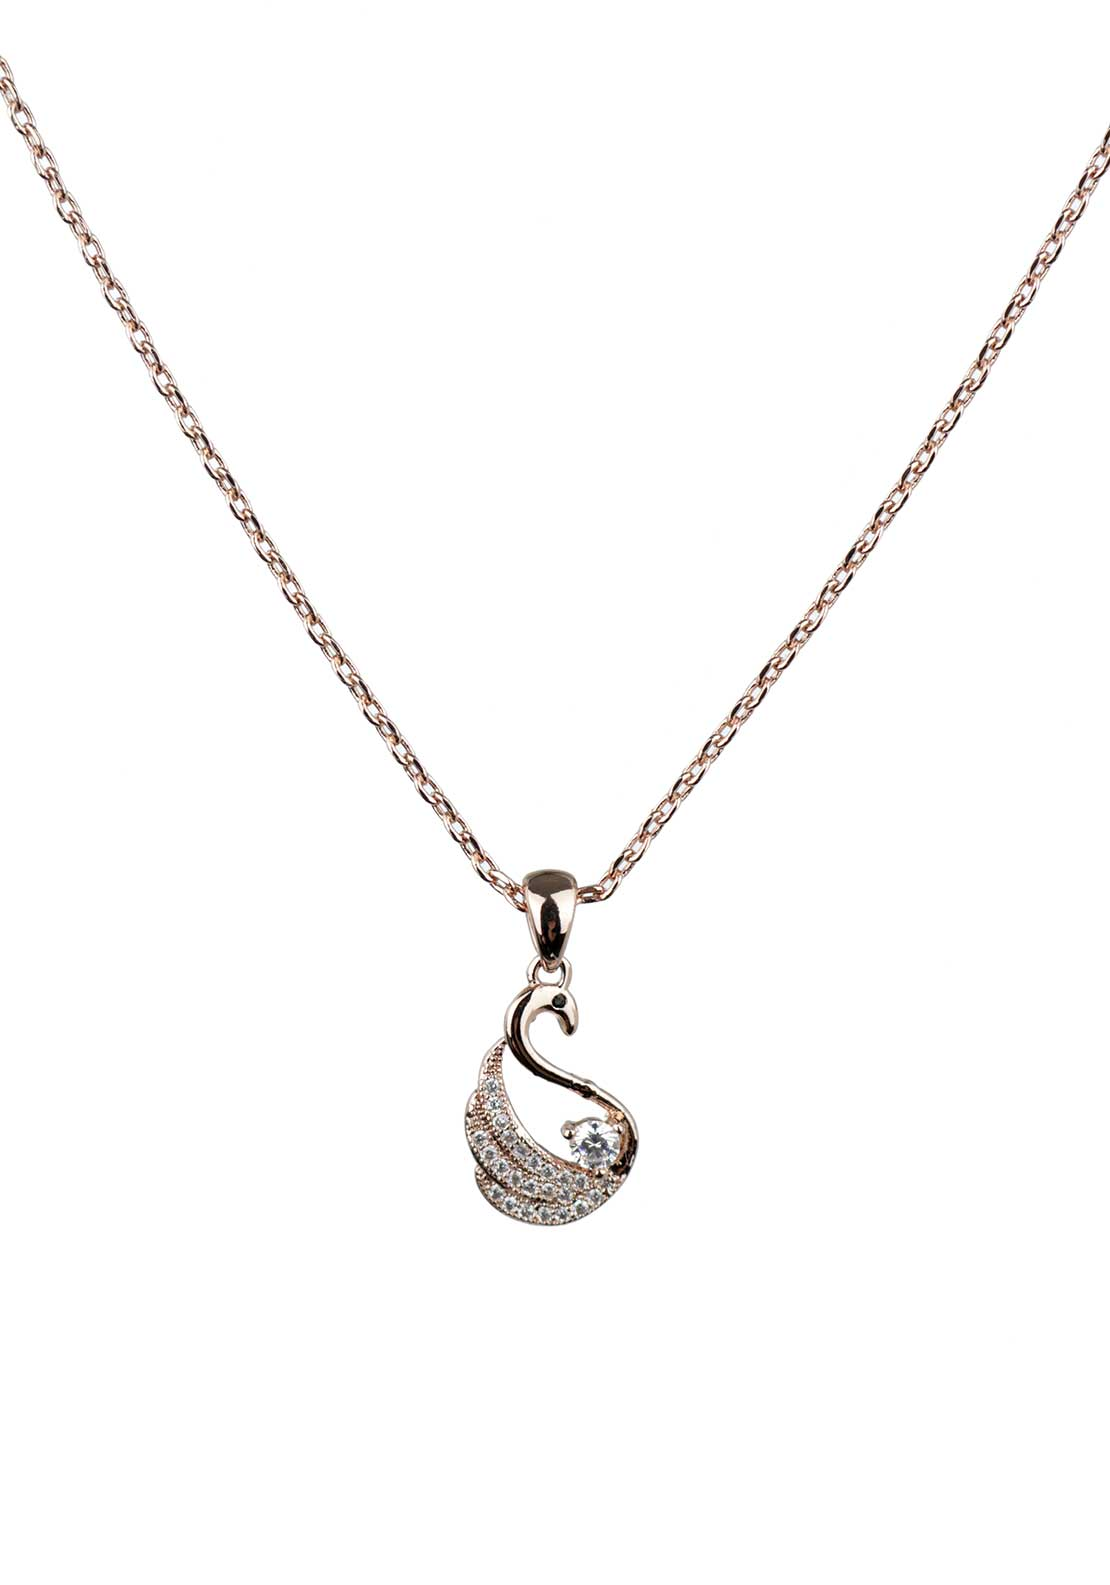 Absolute Jewellery Girls Pave Studded Swan Pendant Necklace, Rose Gold